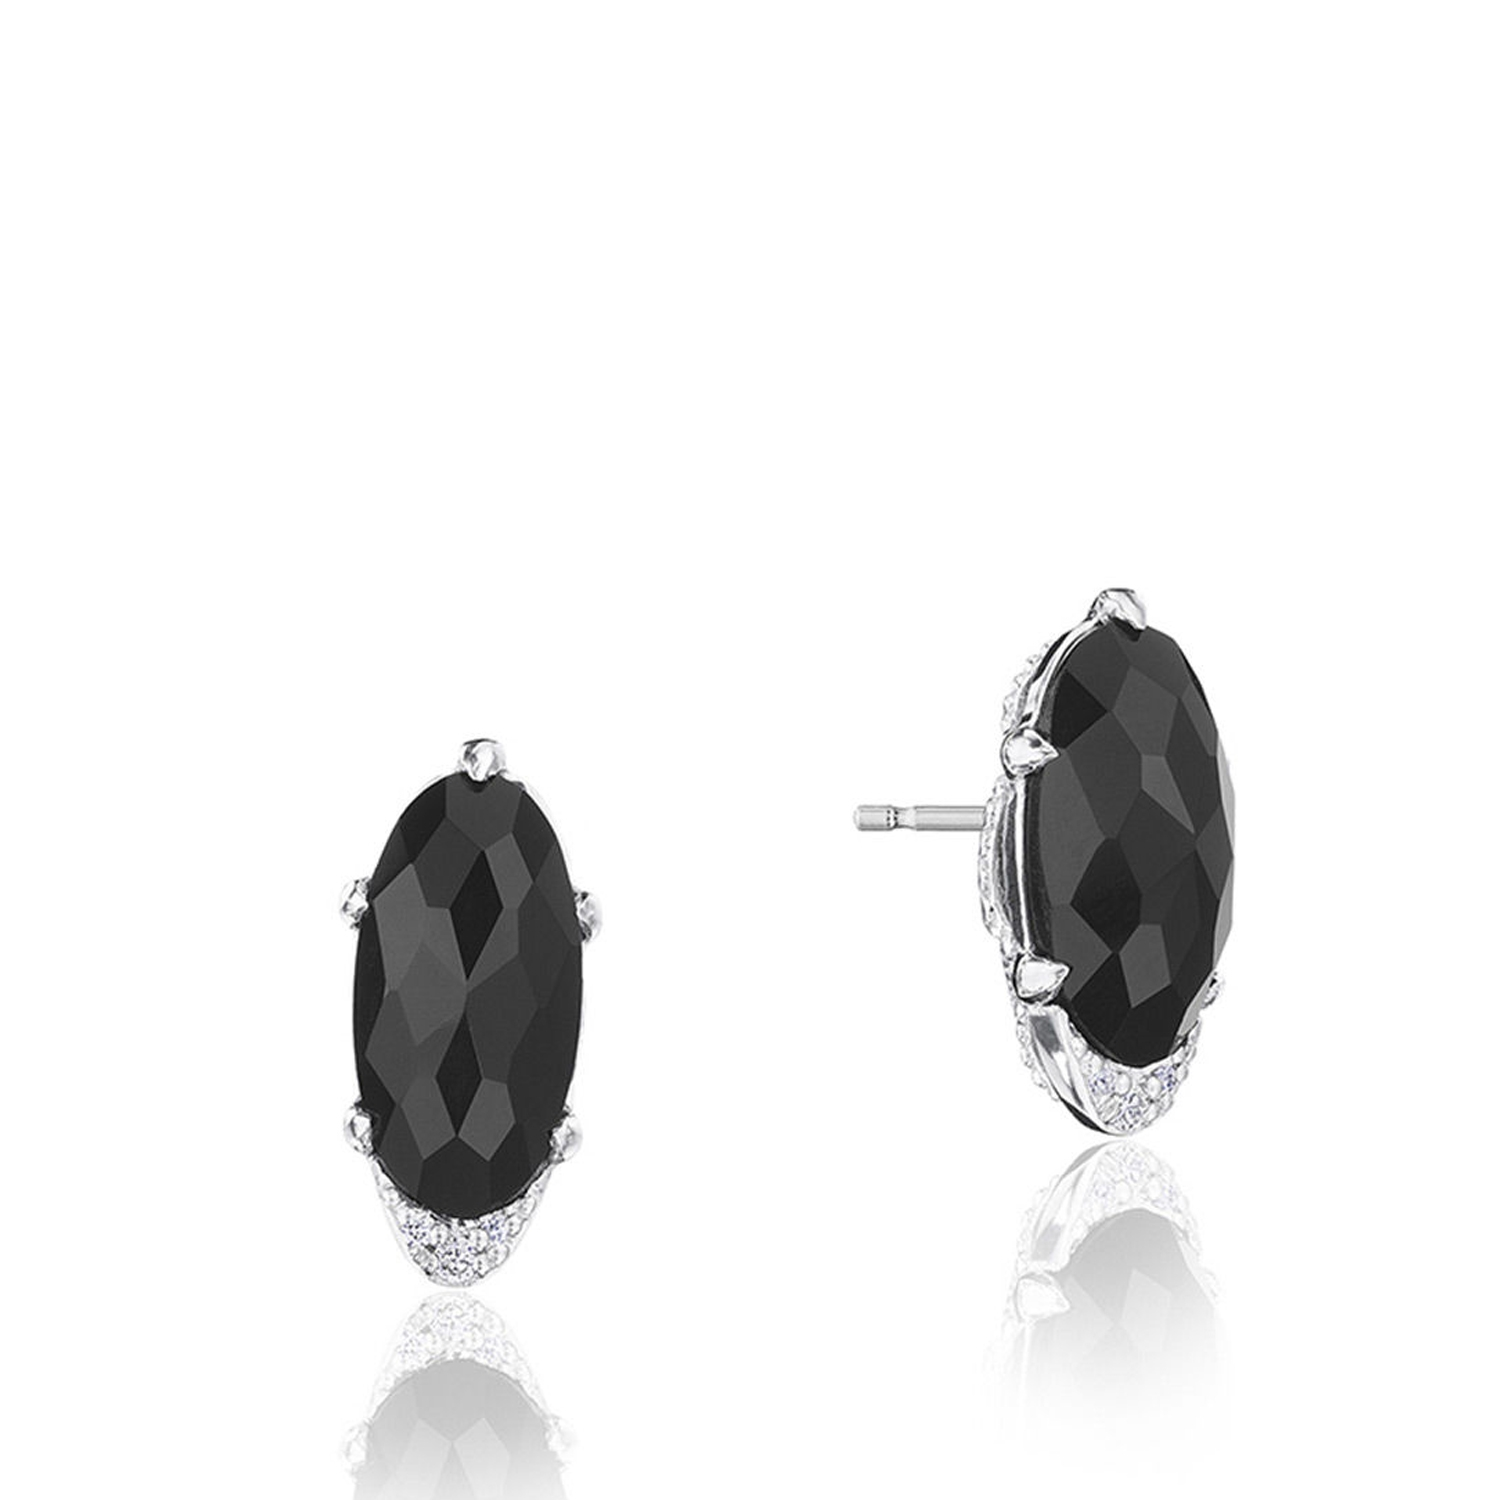 Tacori SE24819 Oval-Shaped Gem Earrings with Black Onyx